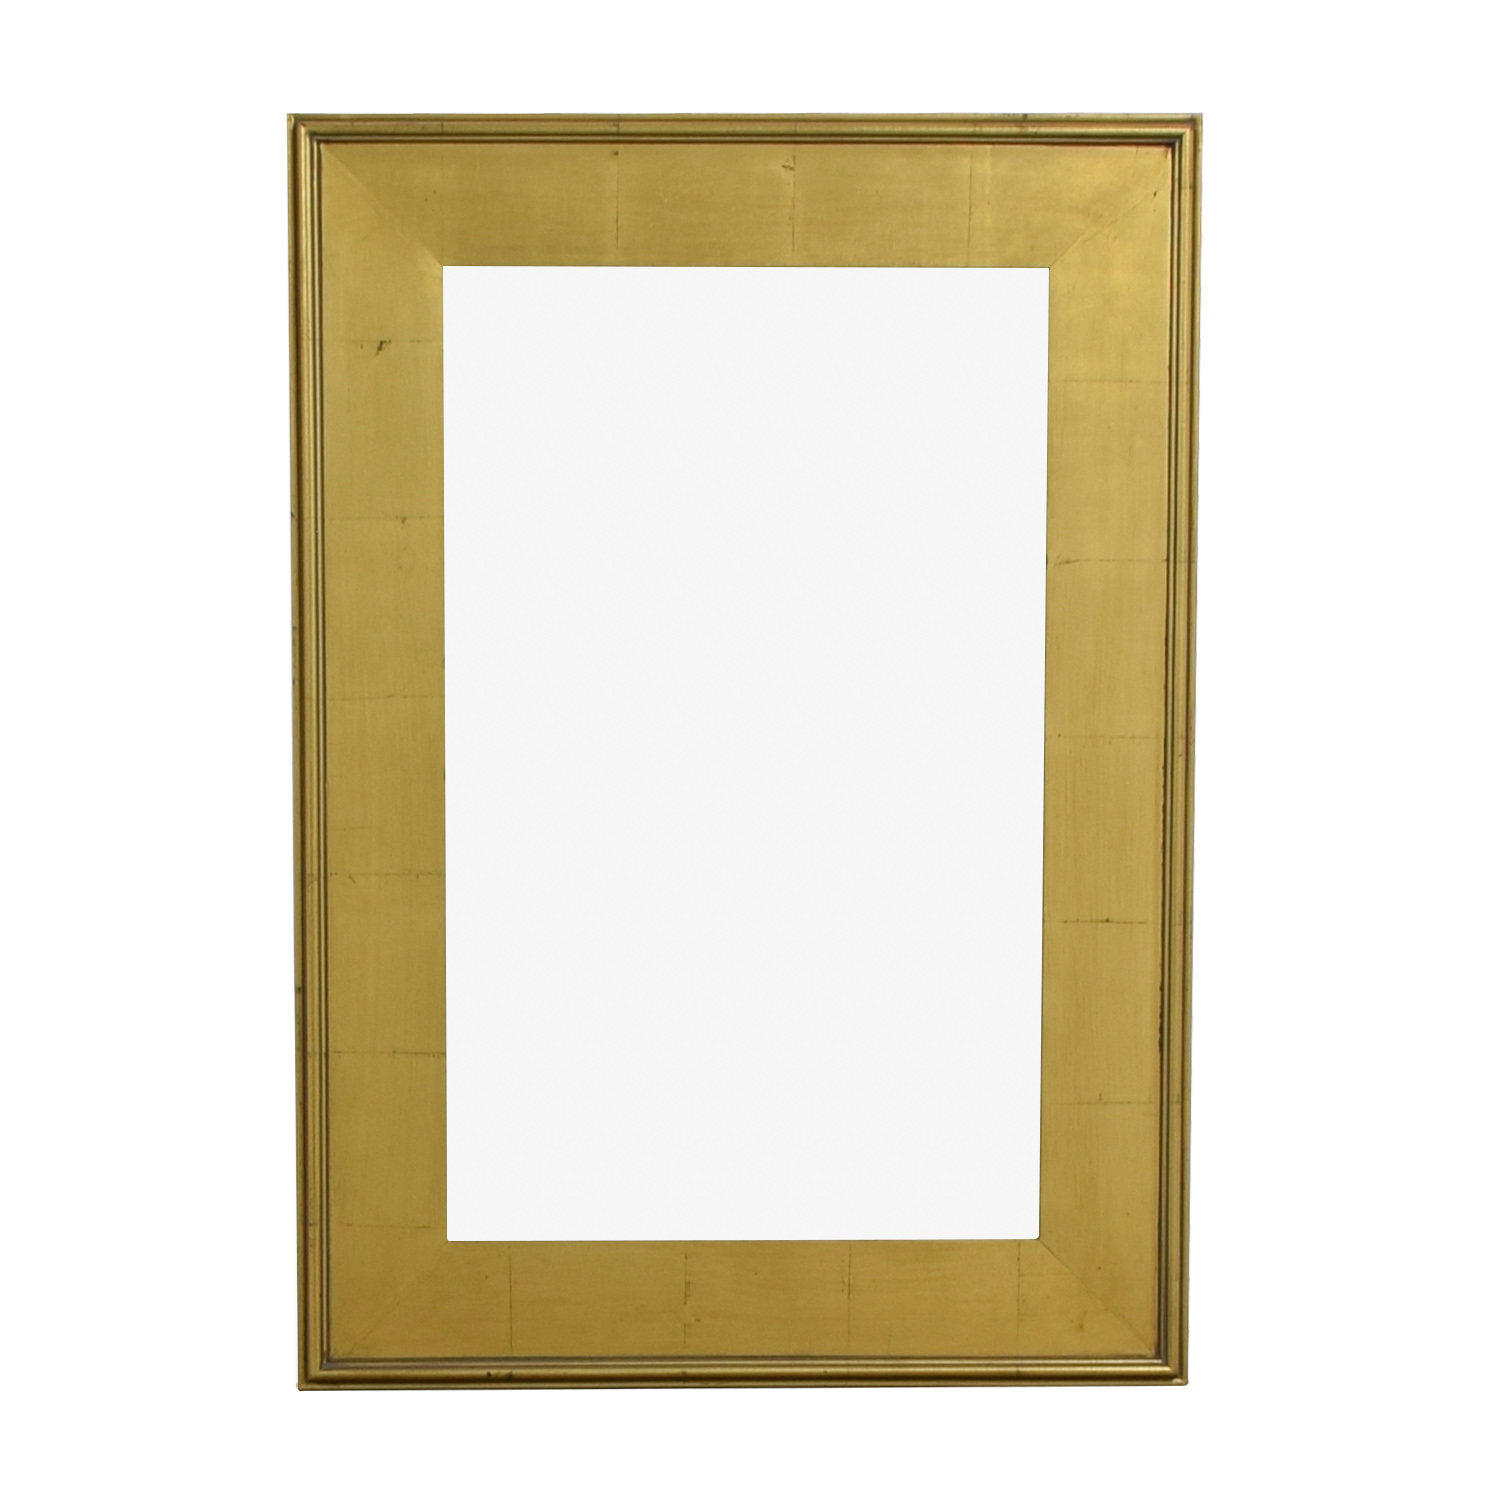 OFF Pottery Barn Pottery Barn Gold Framed Mirror Decor